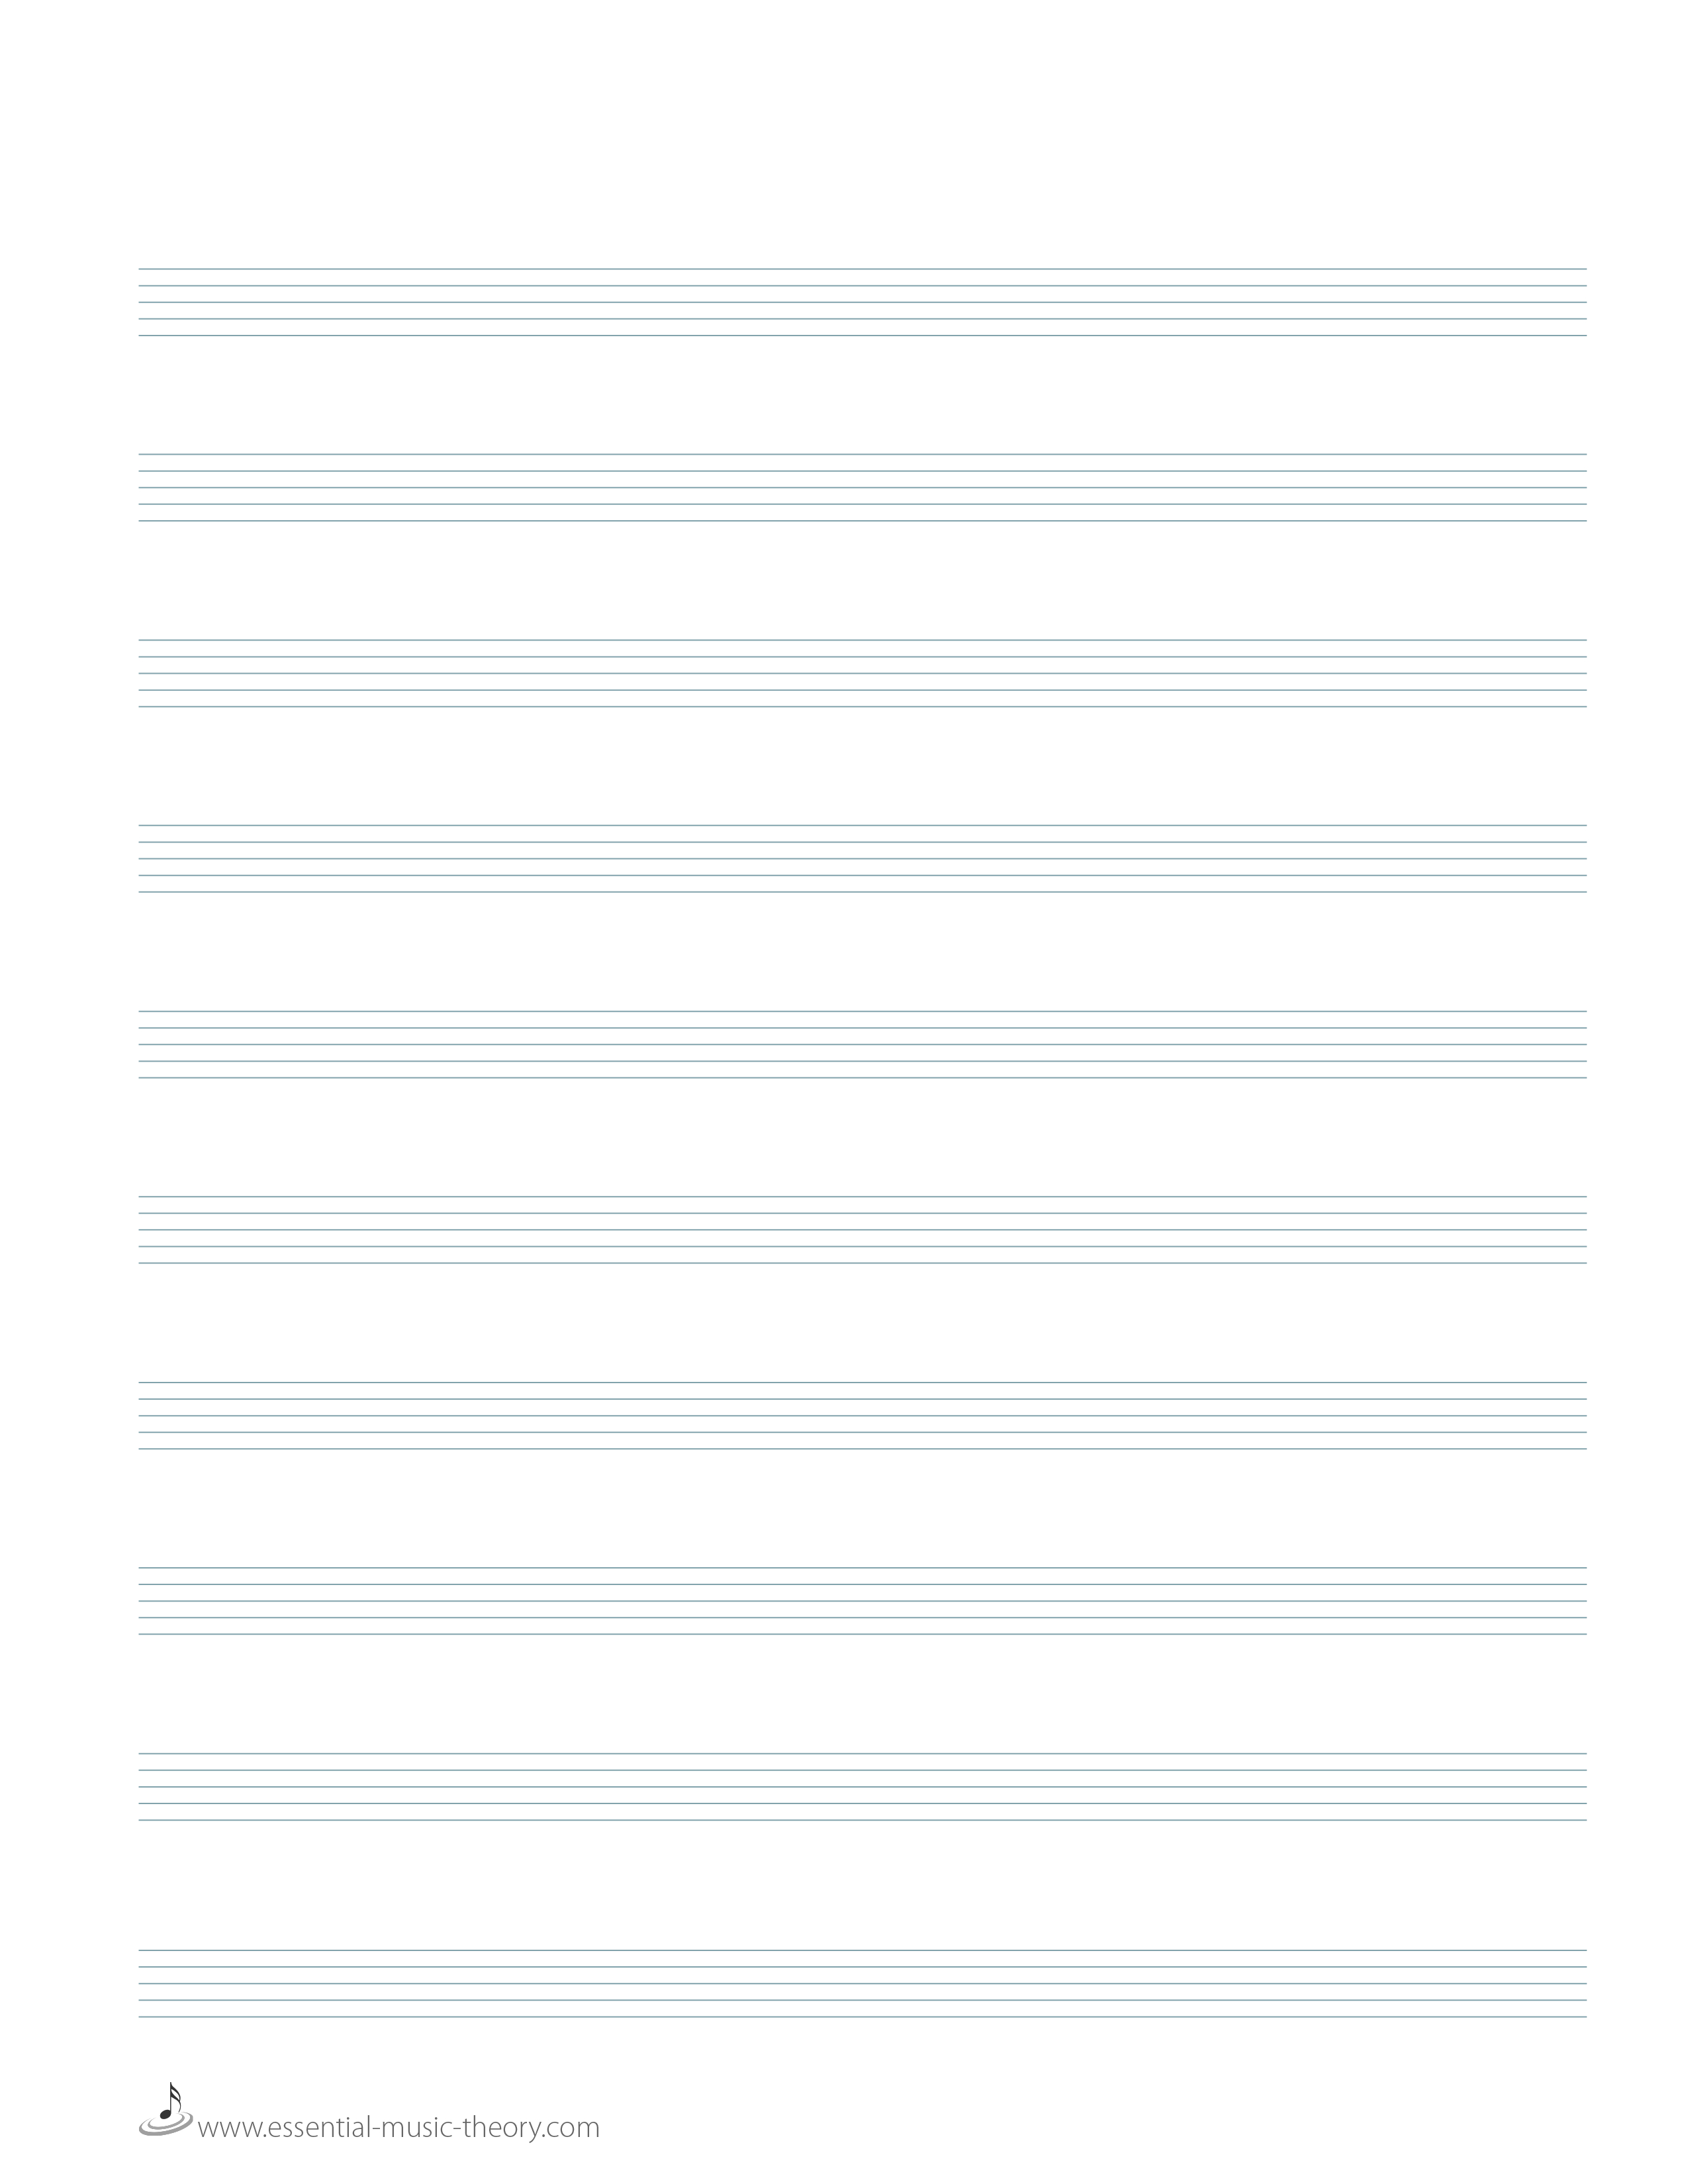 Blank Music Staff Paper - Demir.iso-Consulting.co - Free Printable Staff Paper Blank Sheet Music Net